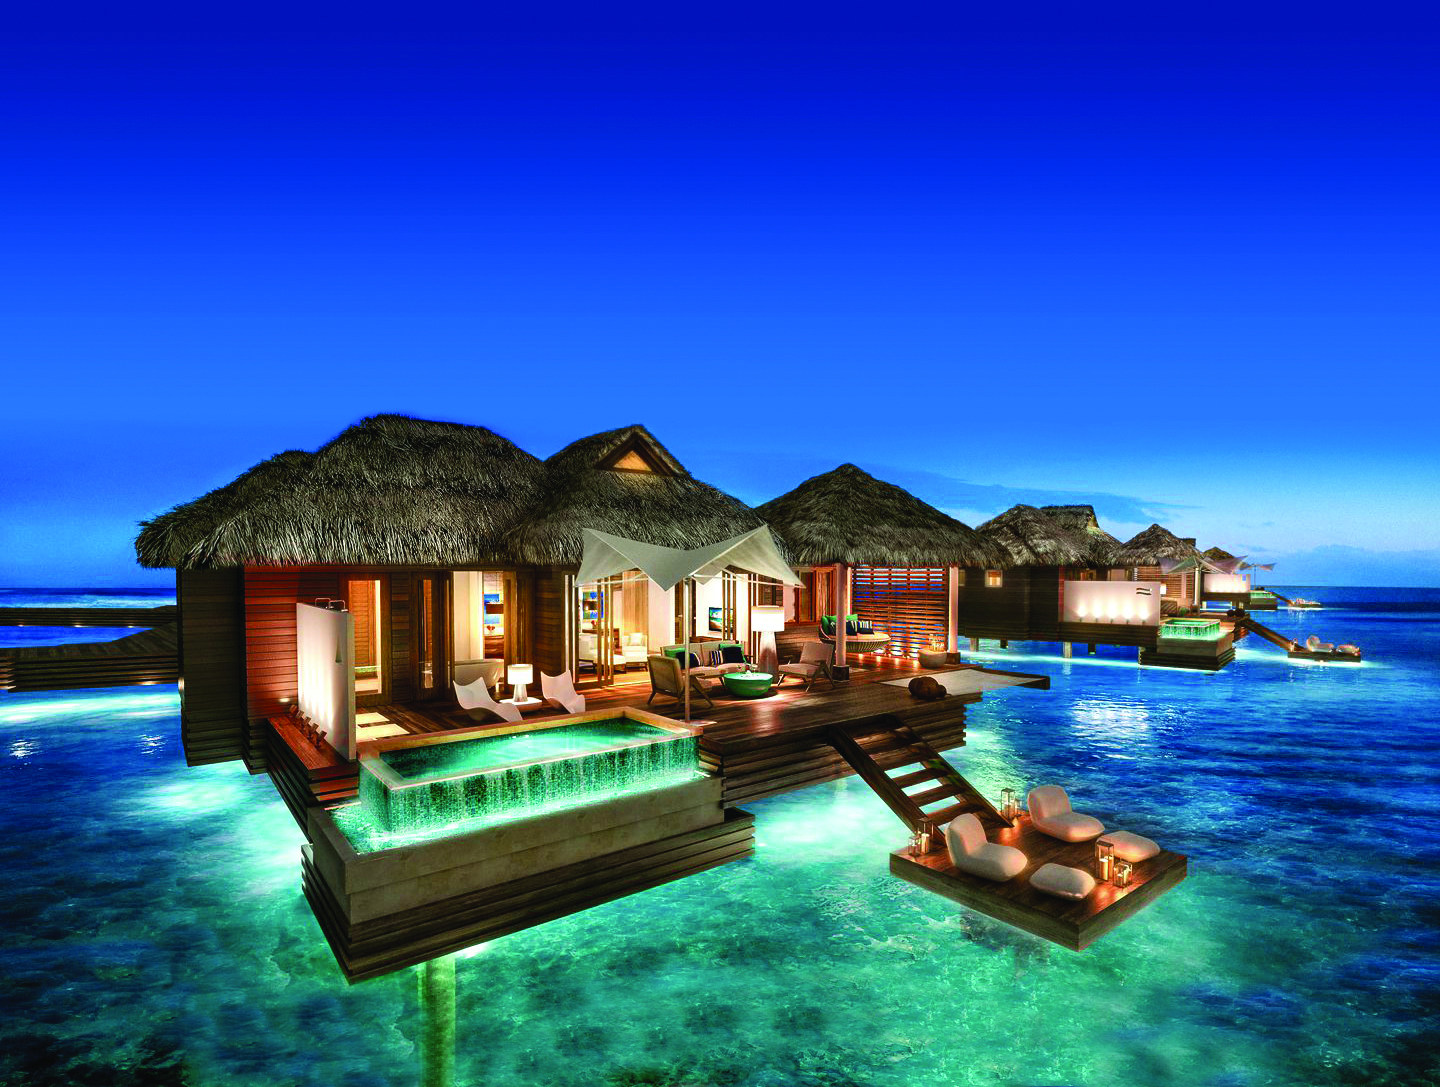 The Ultimate Luxury A Honeymoon With Private Pool Huffpost